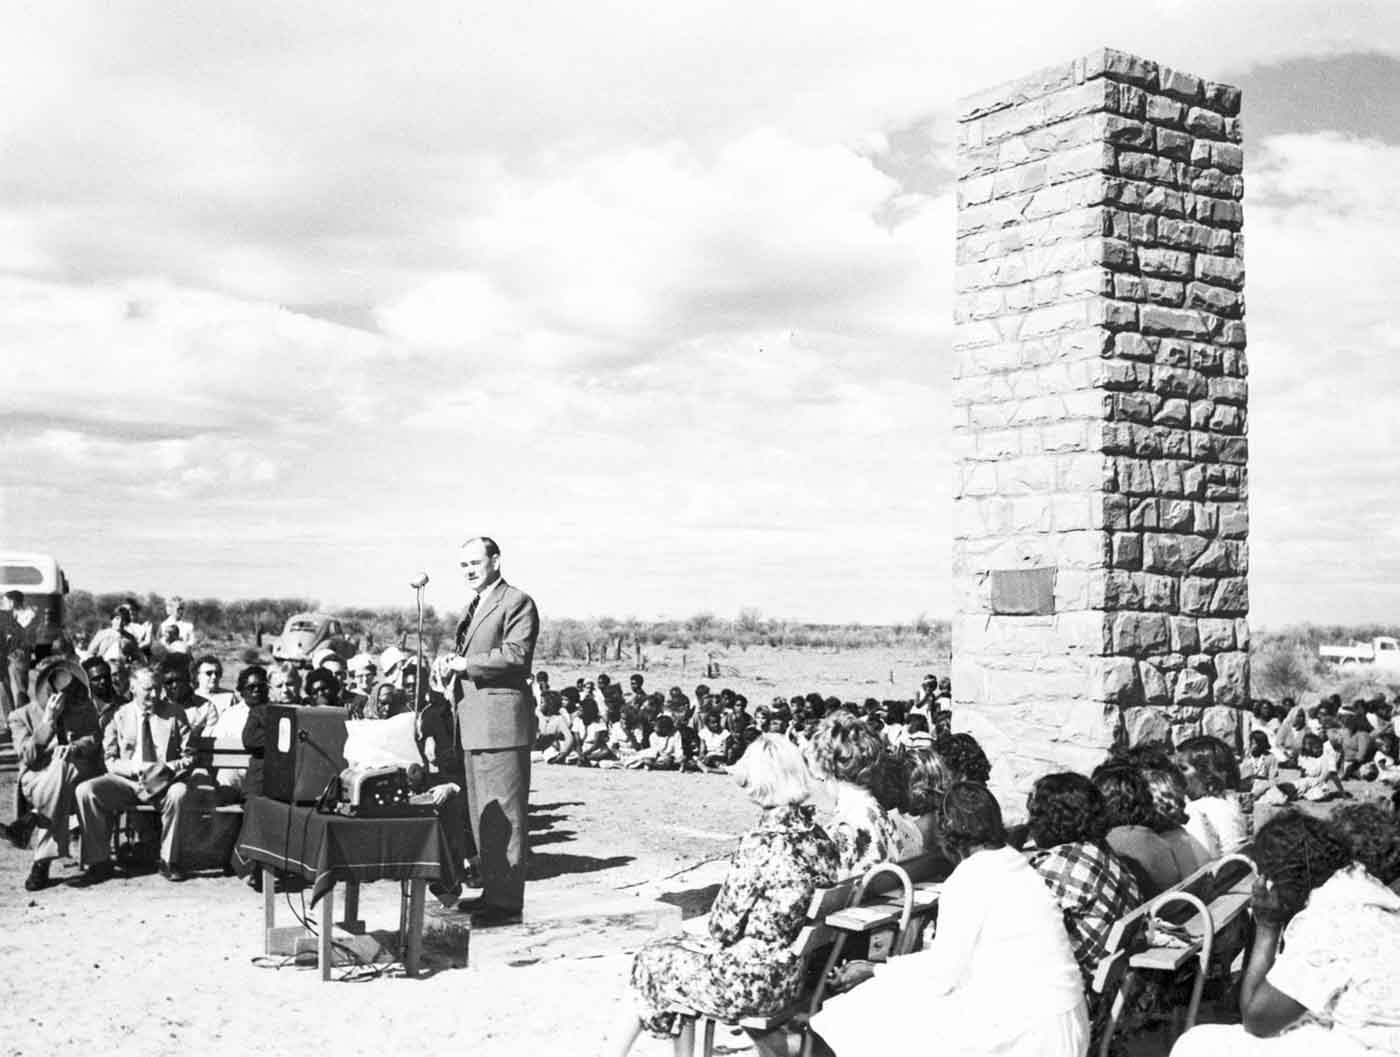 Black and white photo of a man speaking into a microphone and addressing a large seated crowd, some who are sitting on the ground. There is a structure consisting of stone bricks and resembles a monument.